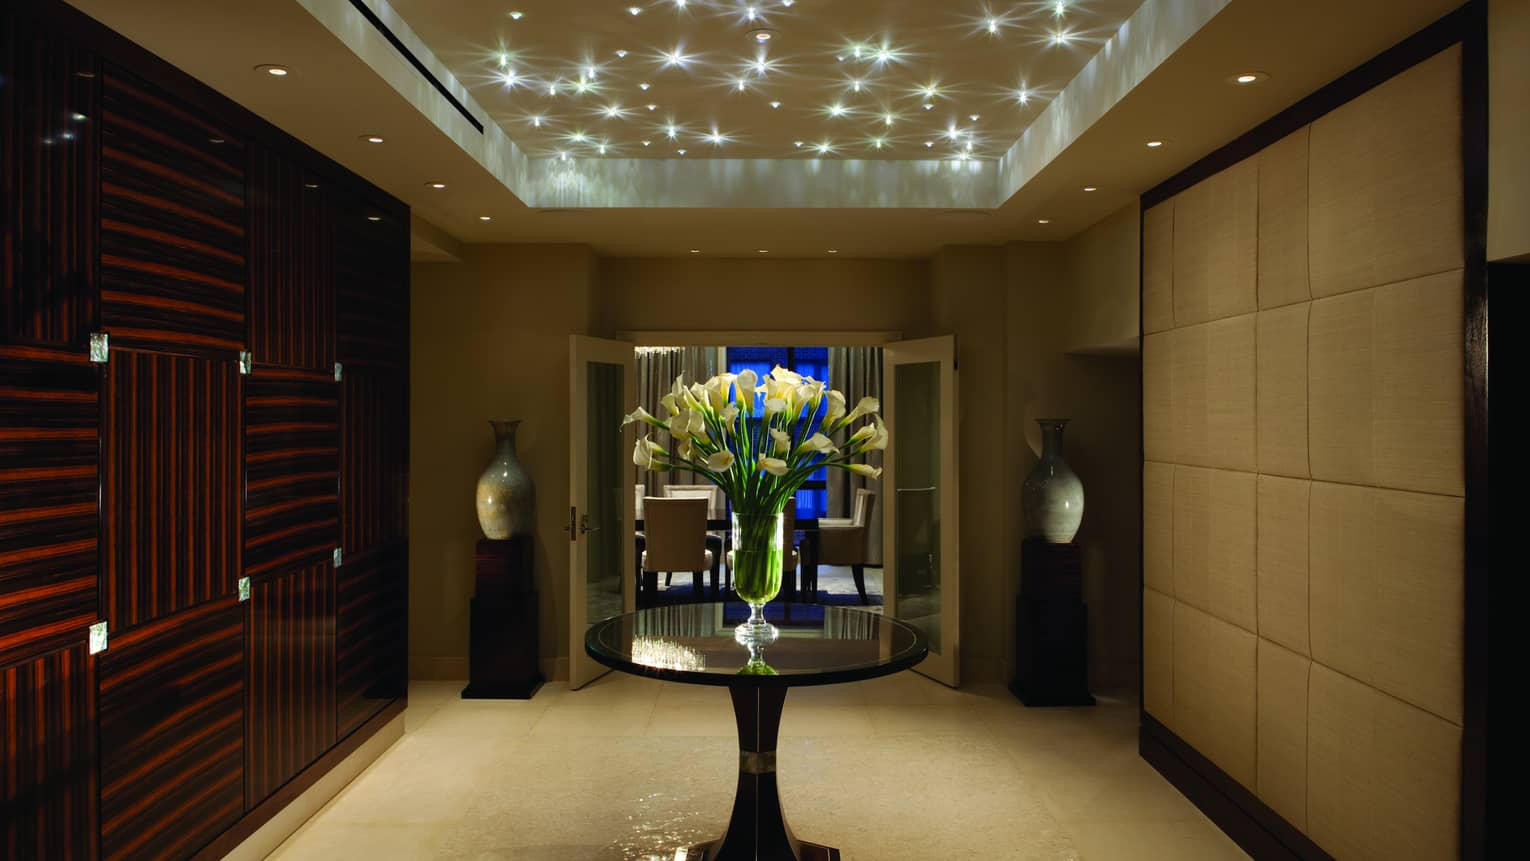 Royal Suite art deco-style private hallway under sparkling lights, door to private dining room at night